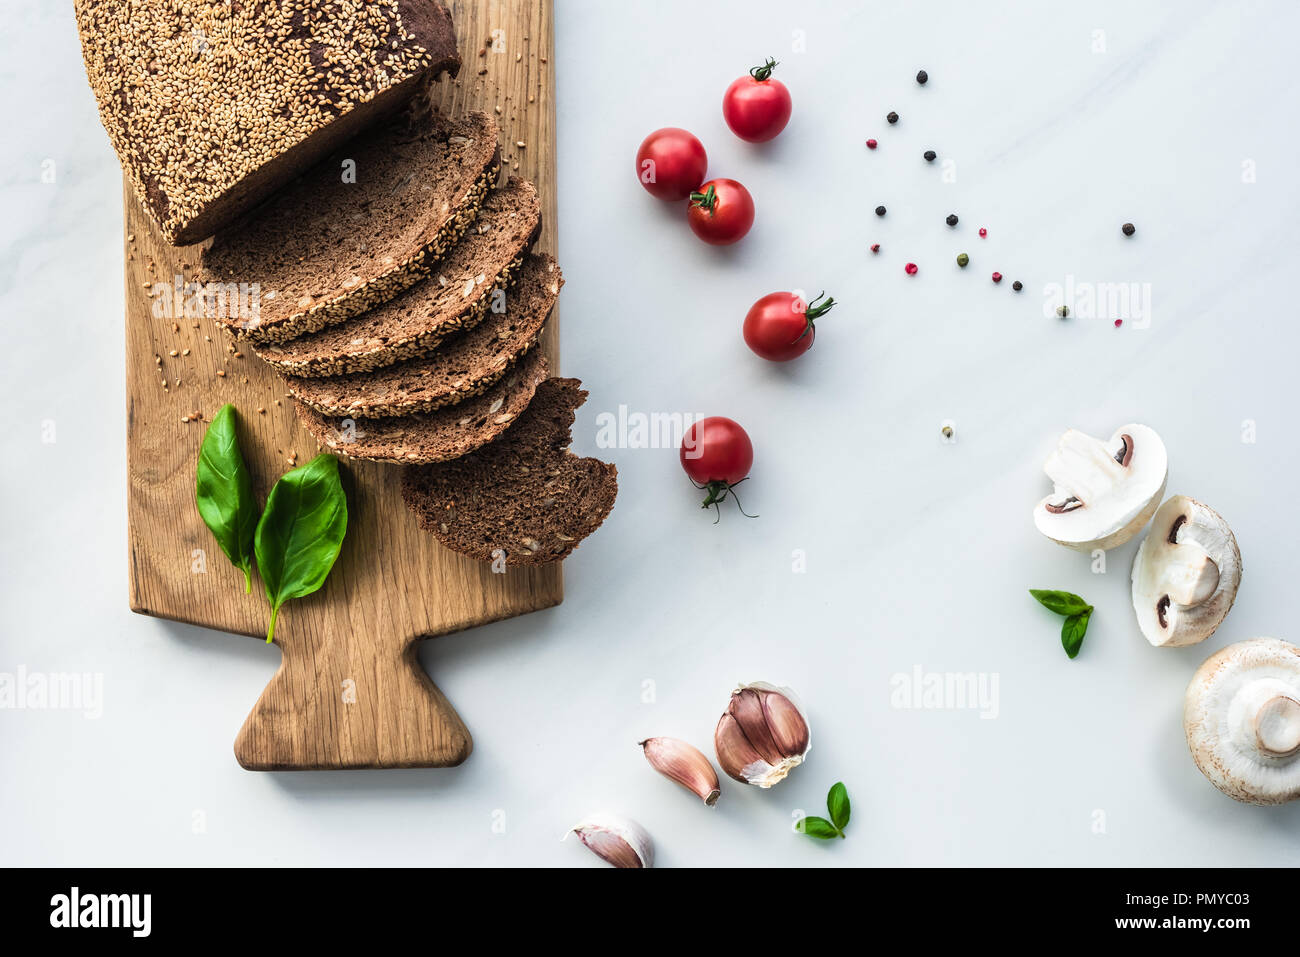 flat lay with cut bread on wooden cutting board, black pepper and vegetables for cooking breakfast on white marble surface Stock Photo